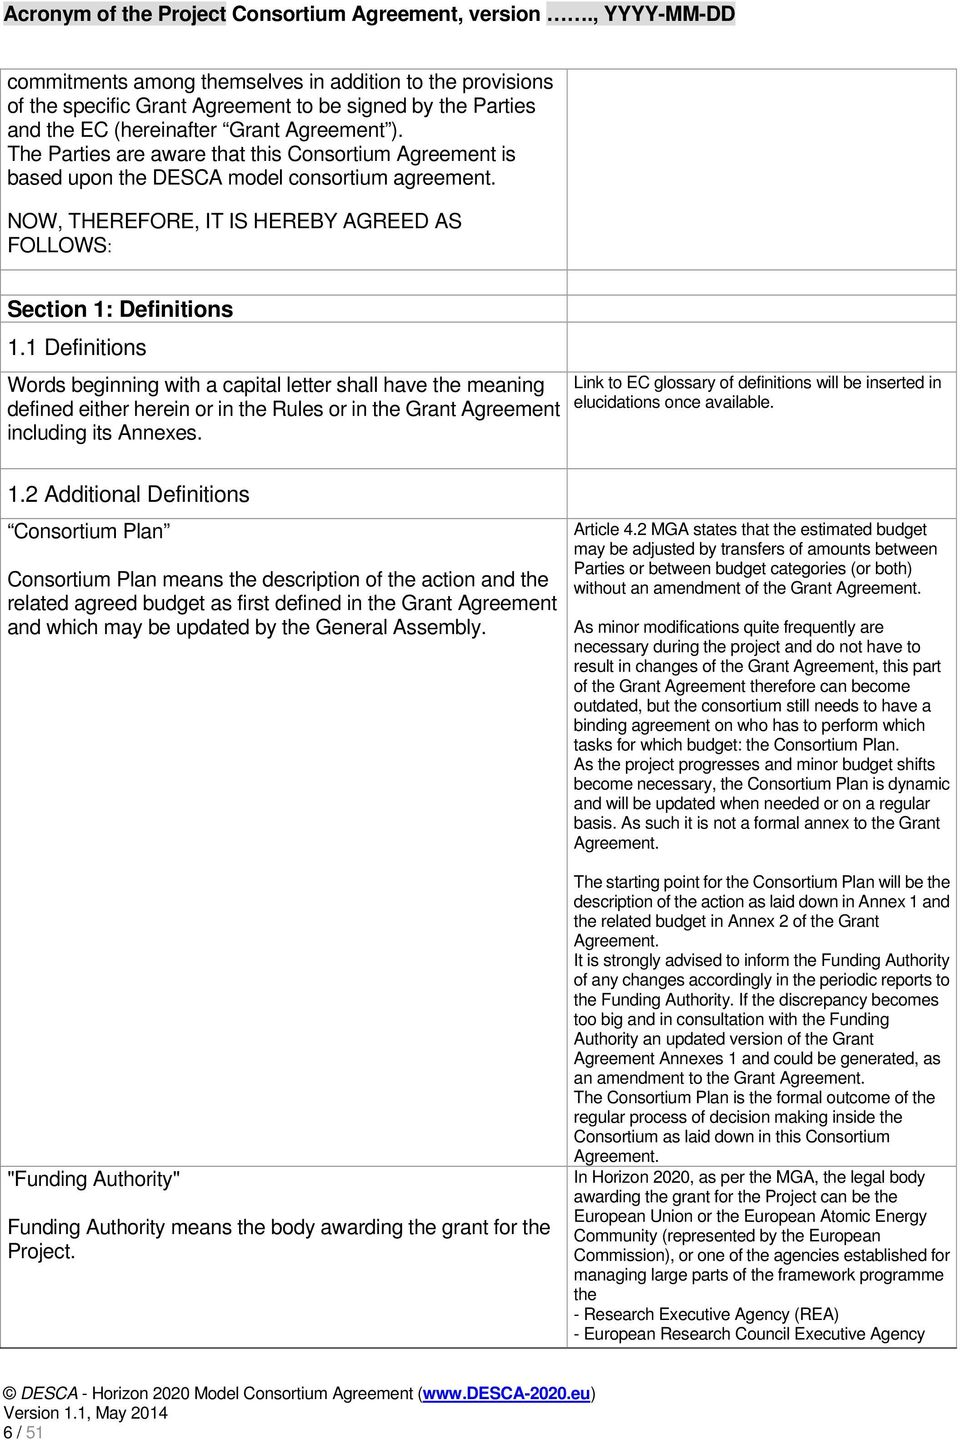 The Working Group Provides This Model Consortium Agreement As Draft